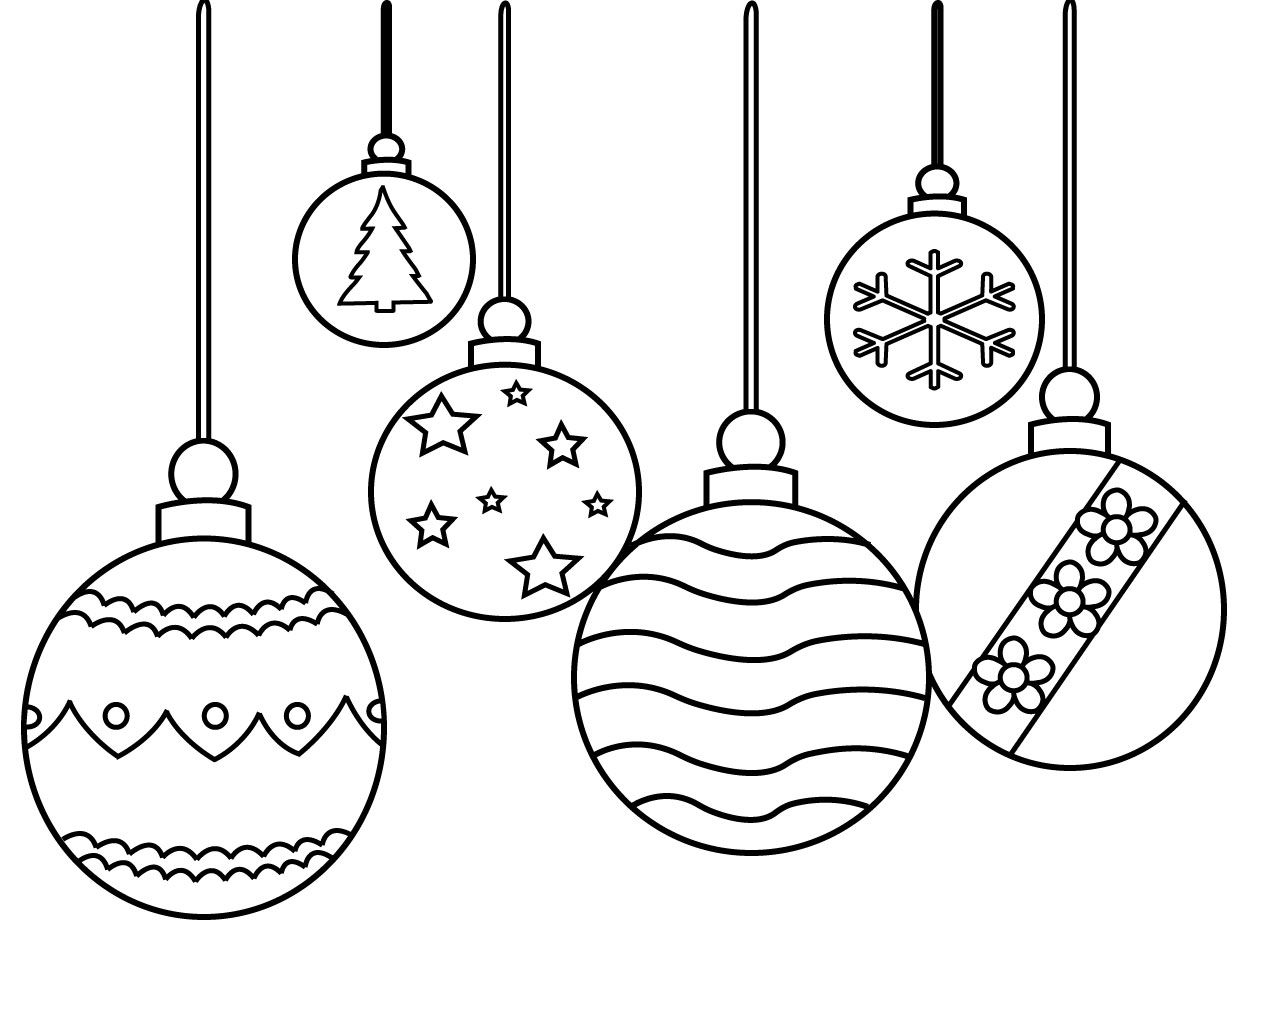 Colour And Design Your Own Christmas Ornaments Printables In Th Christmas Ornament Template Printable Christmas Ornaments Printable Christmas Coloring Pages